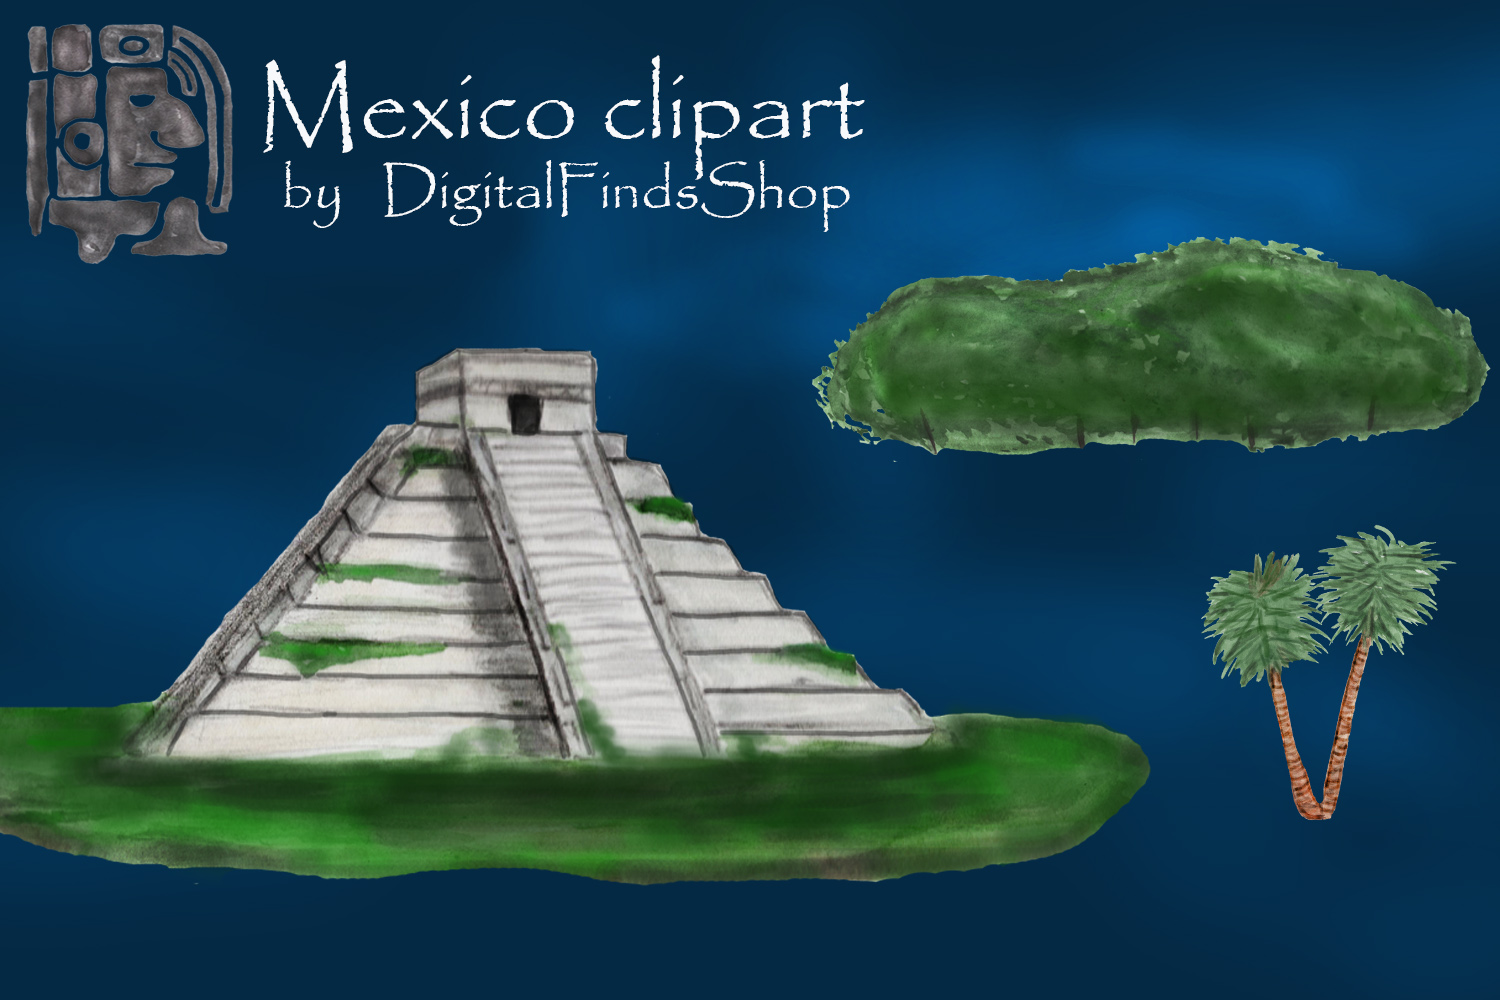 Mayan clipart, ancient civilizations of Mexico watercolor example image 6